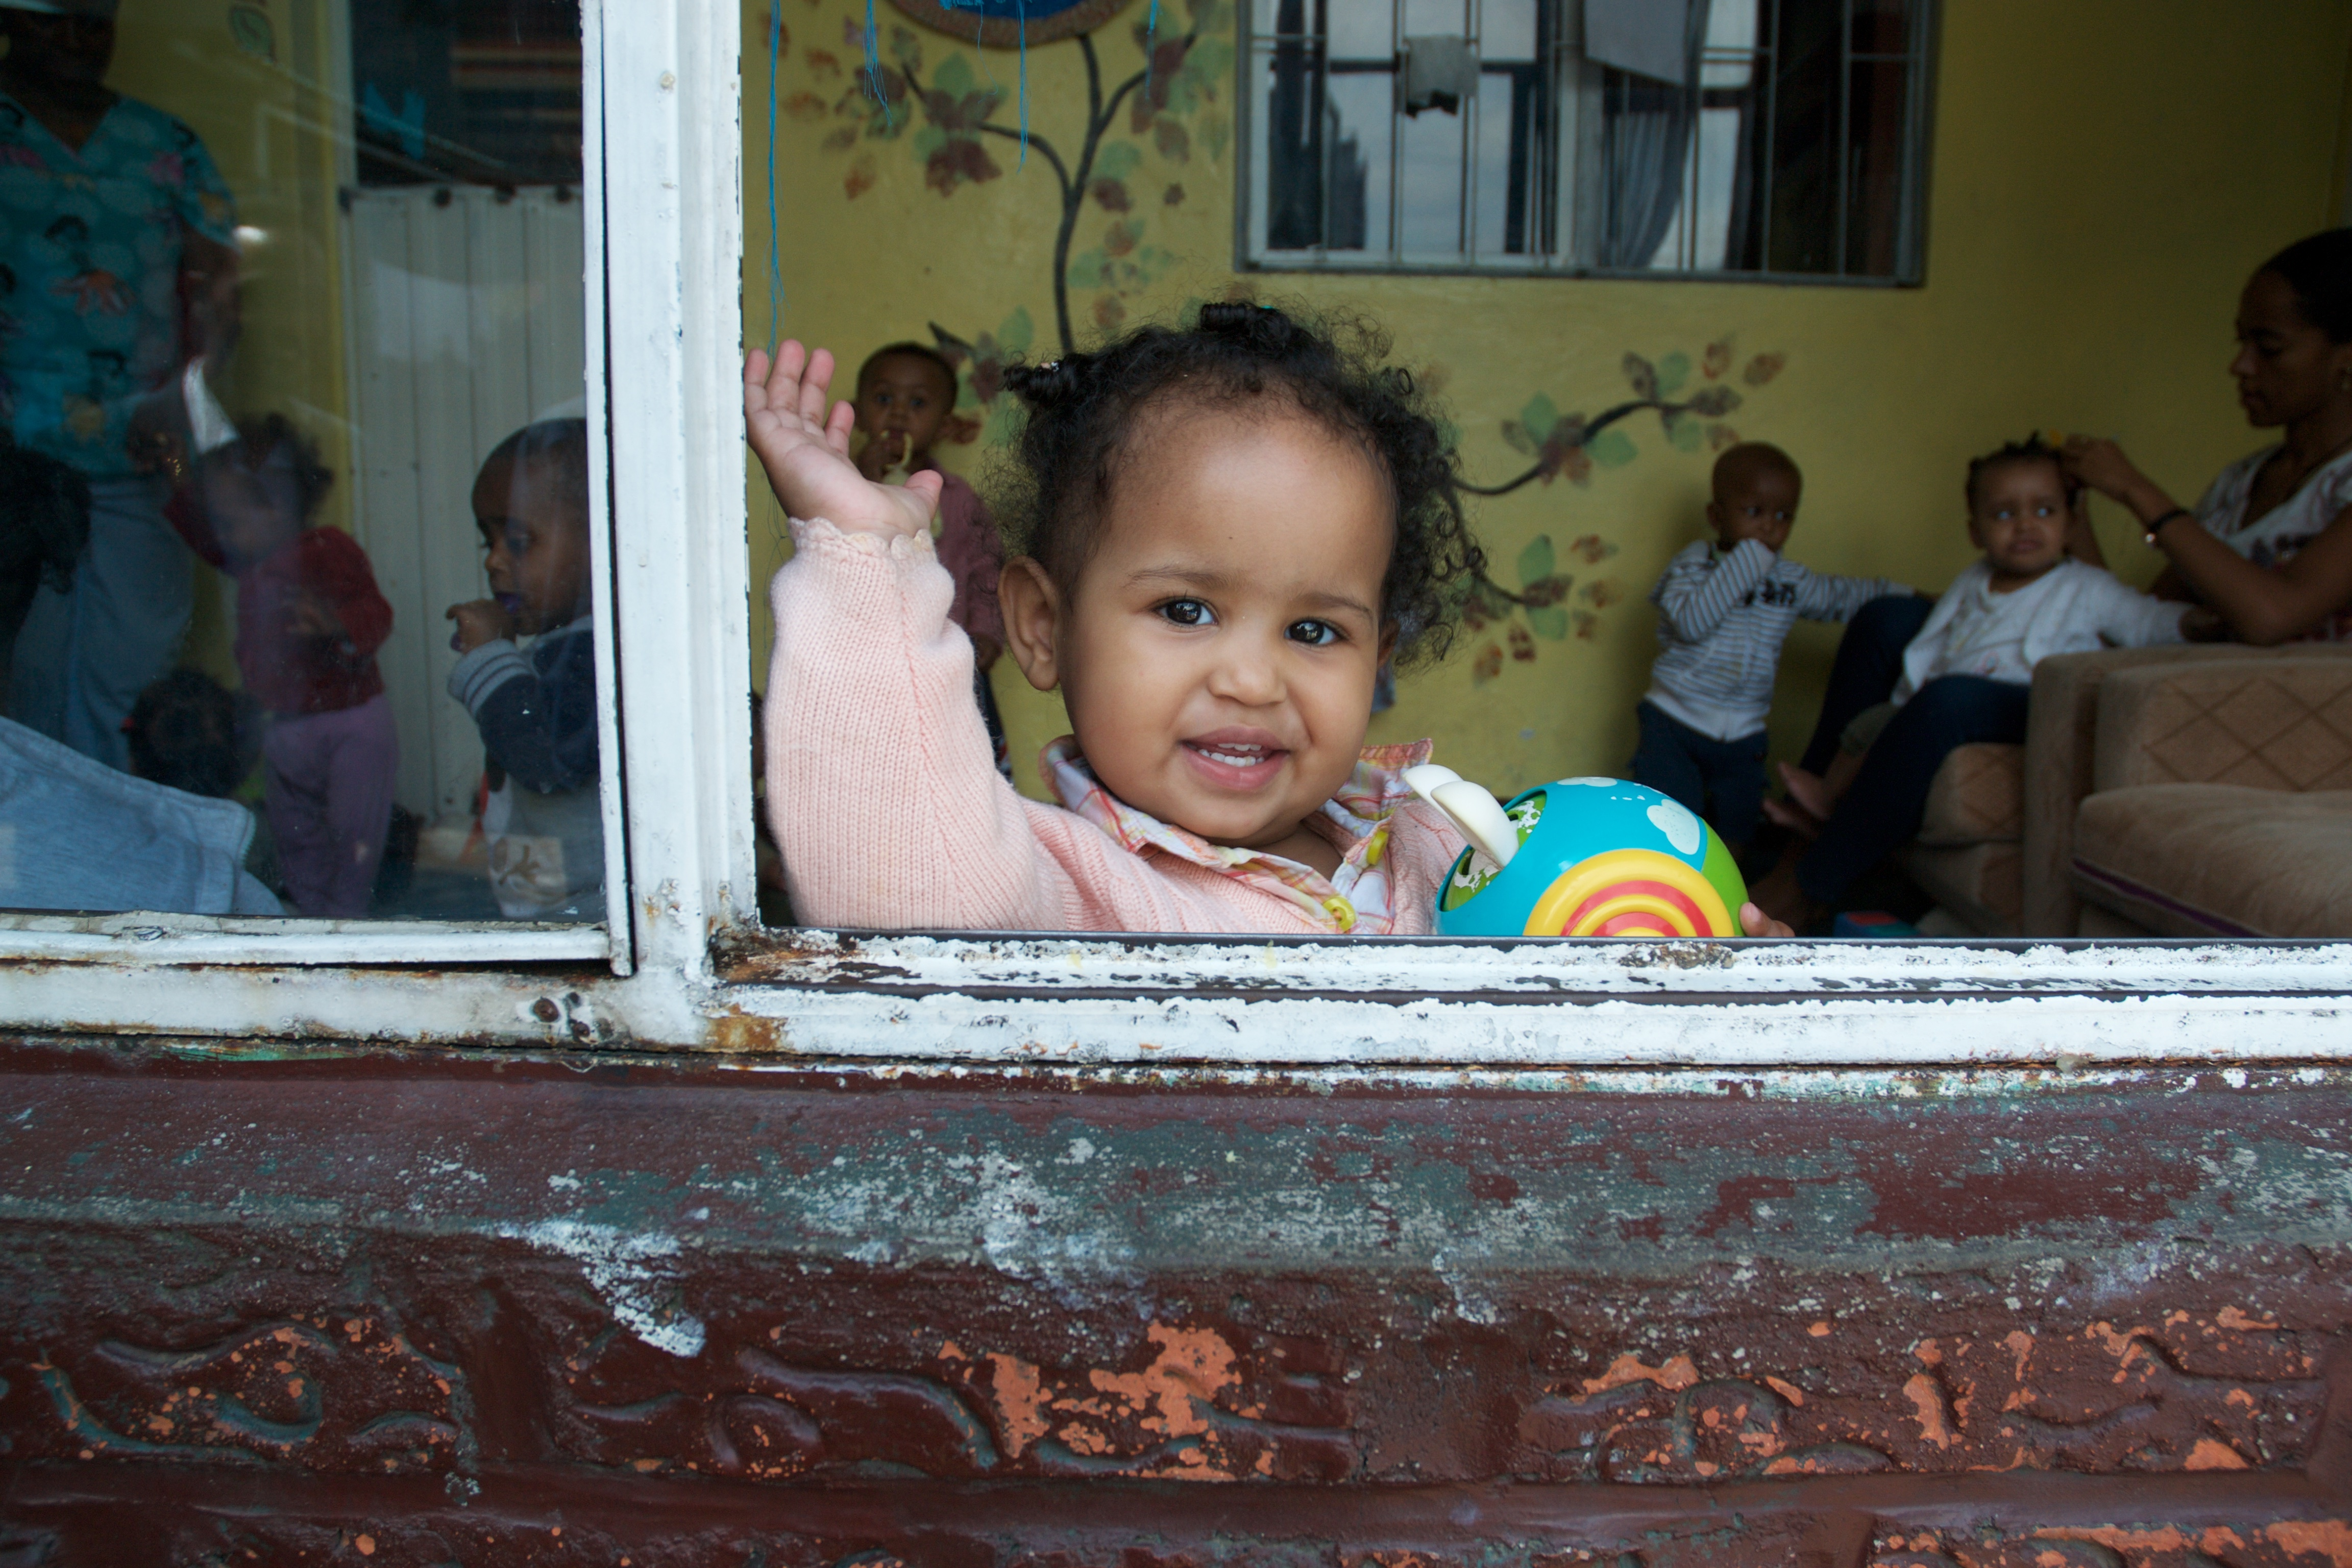 A young girl is leaning out of the window and waving.